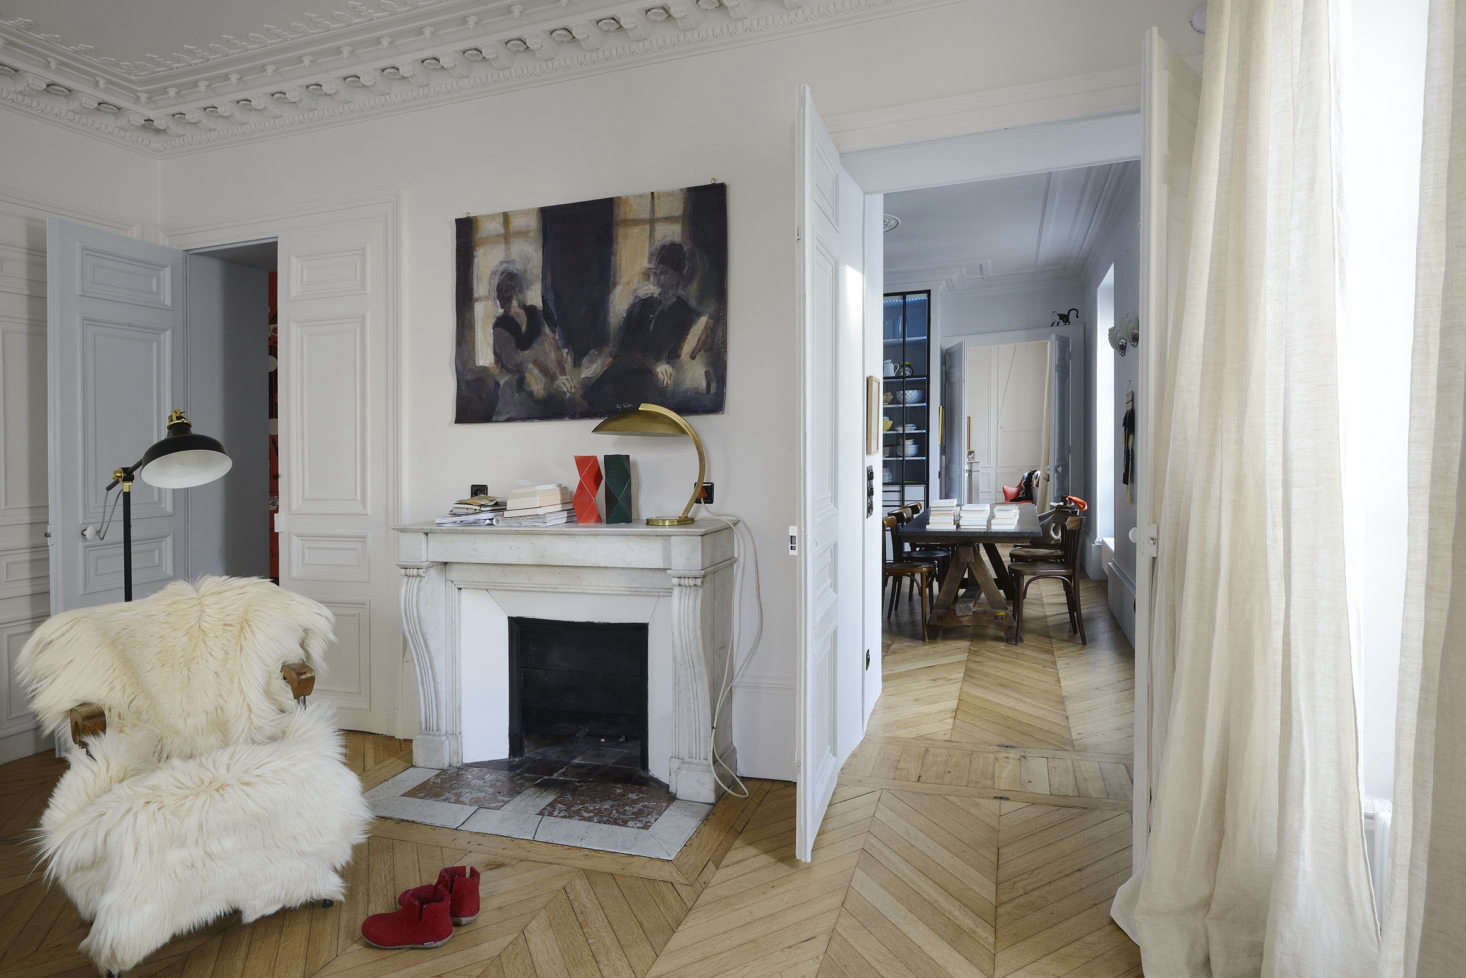 The apartment occupies the third floor of a grand th-century Parisian building in the center of Paris. Linde and Saalburg divided the layout into three zones: the living area in the center with the parents&#8